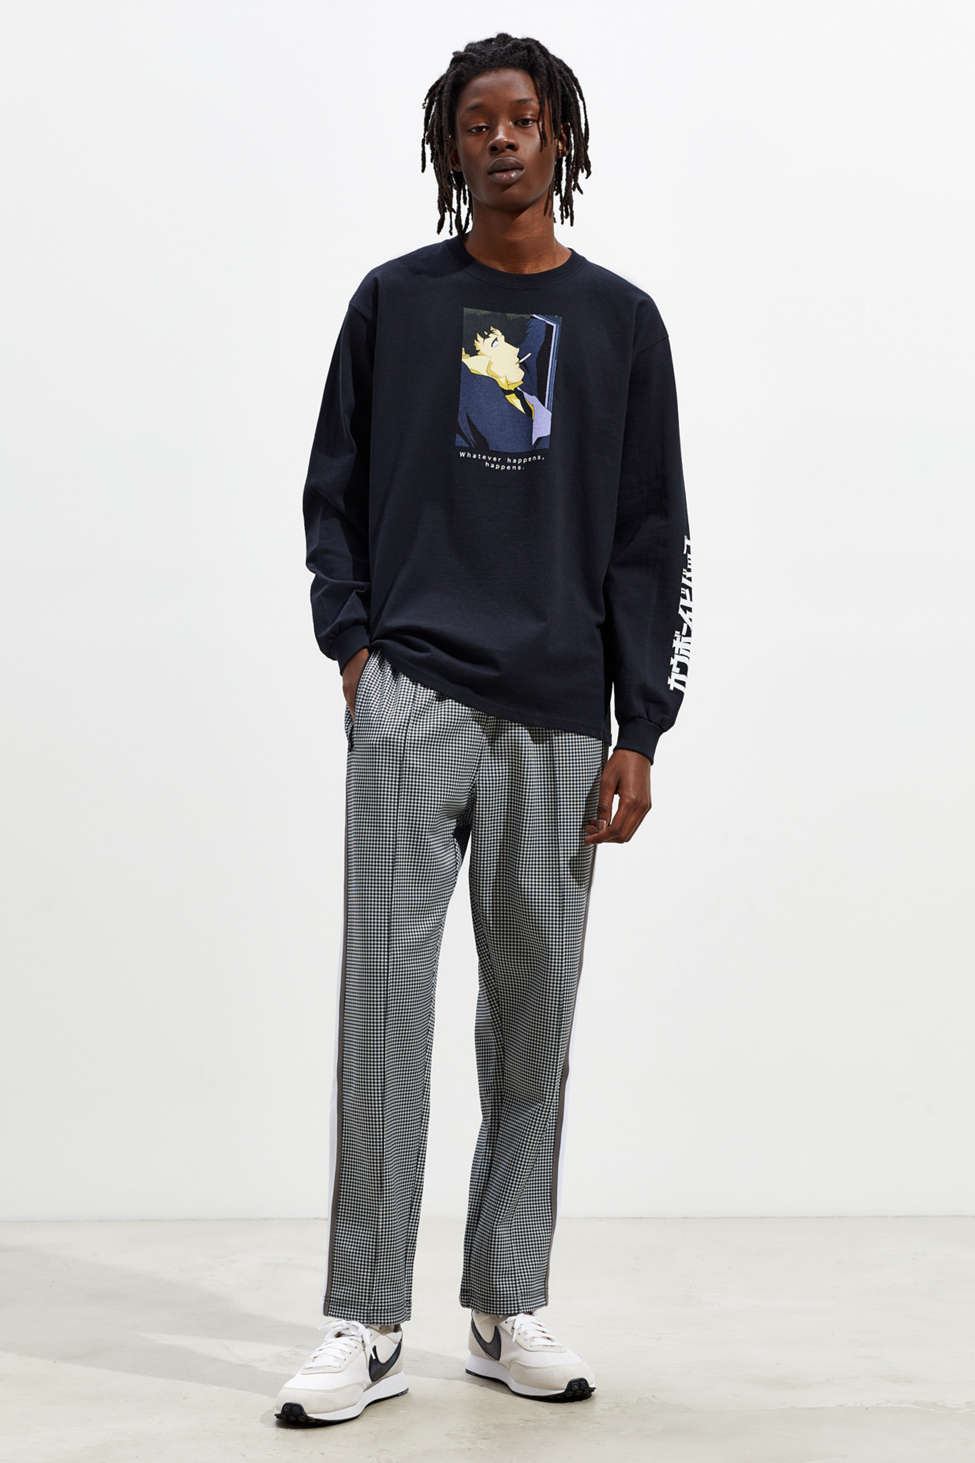 Cowboy Bebop Whatever Happens Long Sleeve Tee by Urban Outfitters